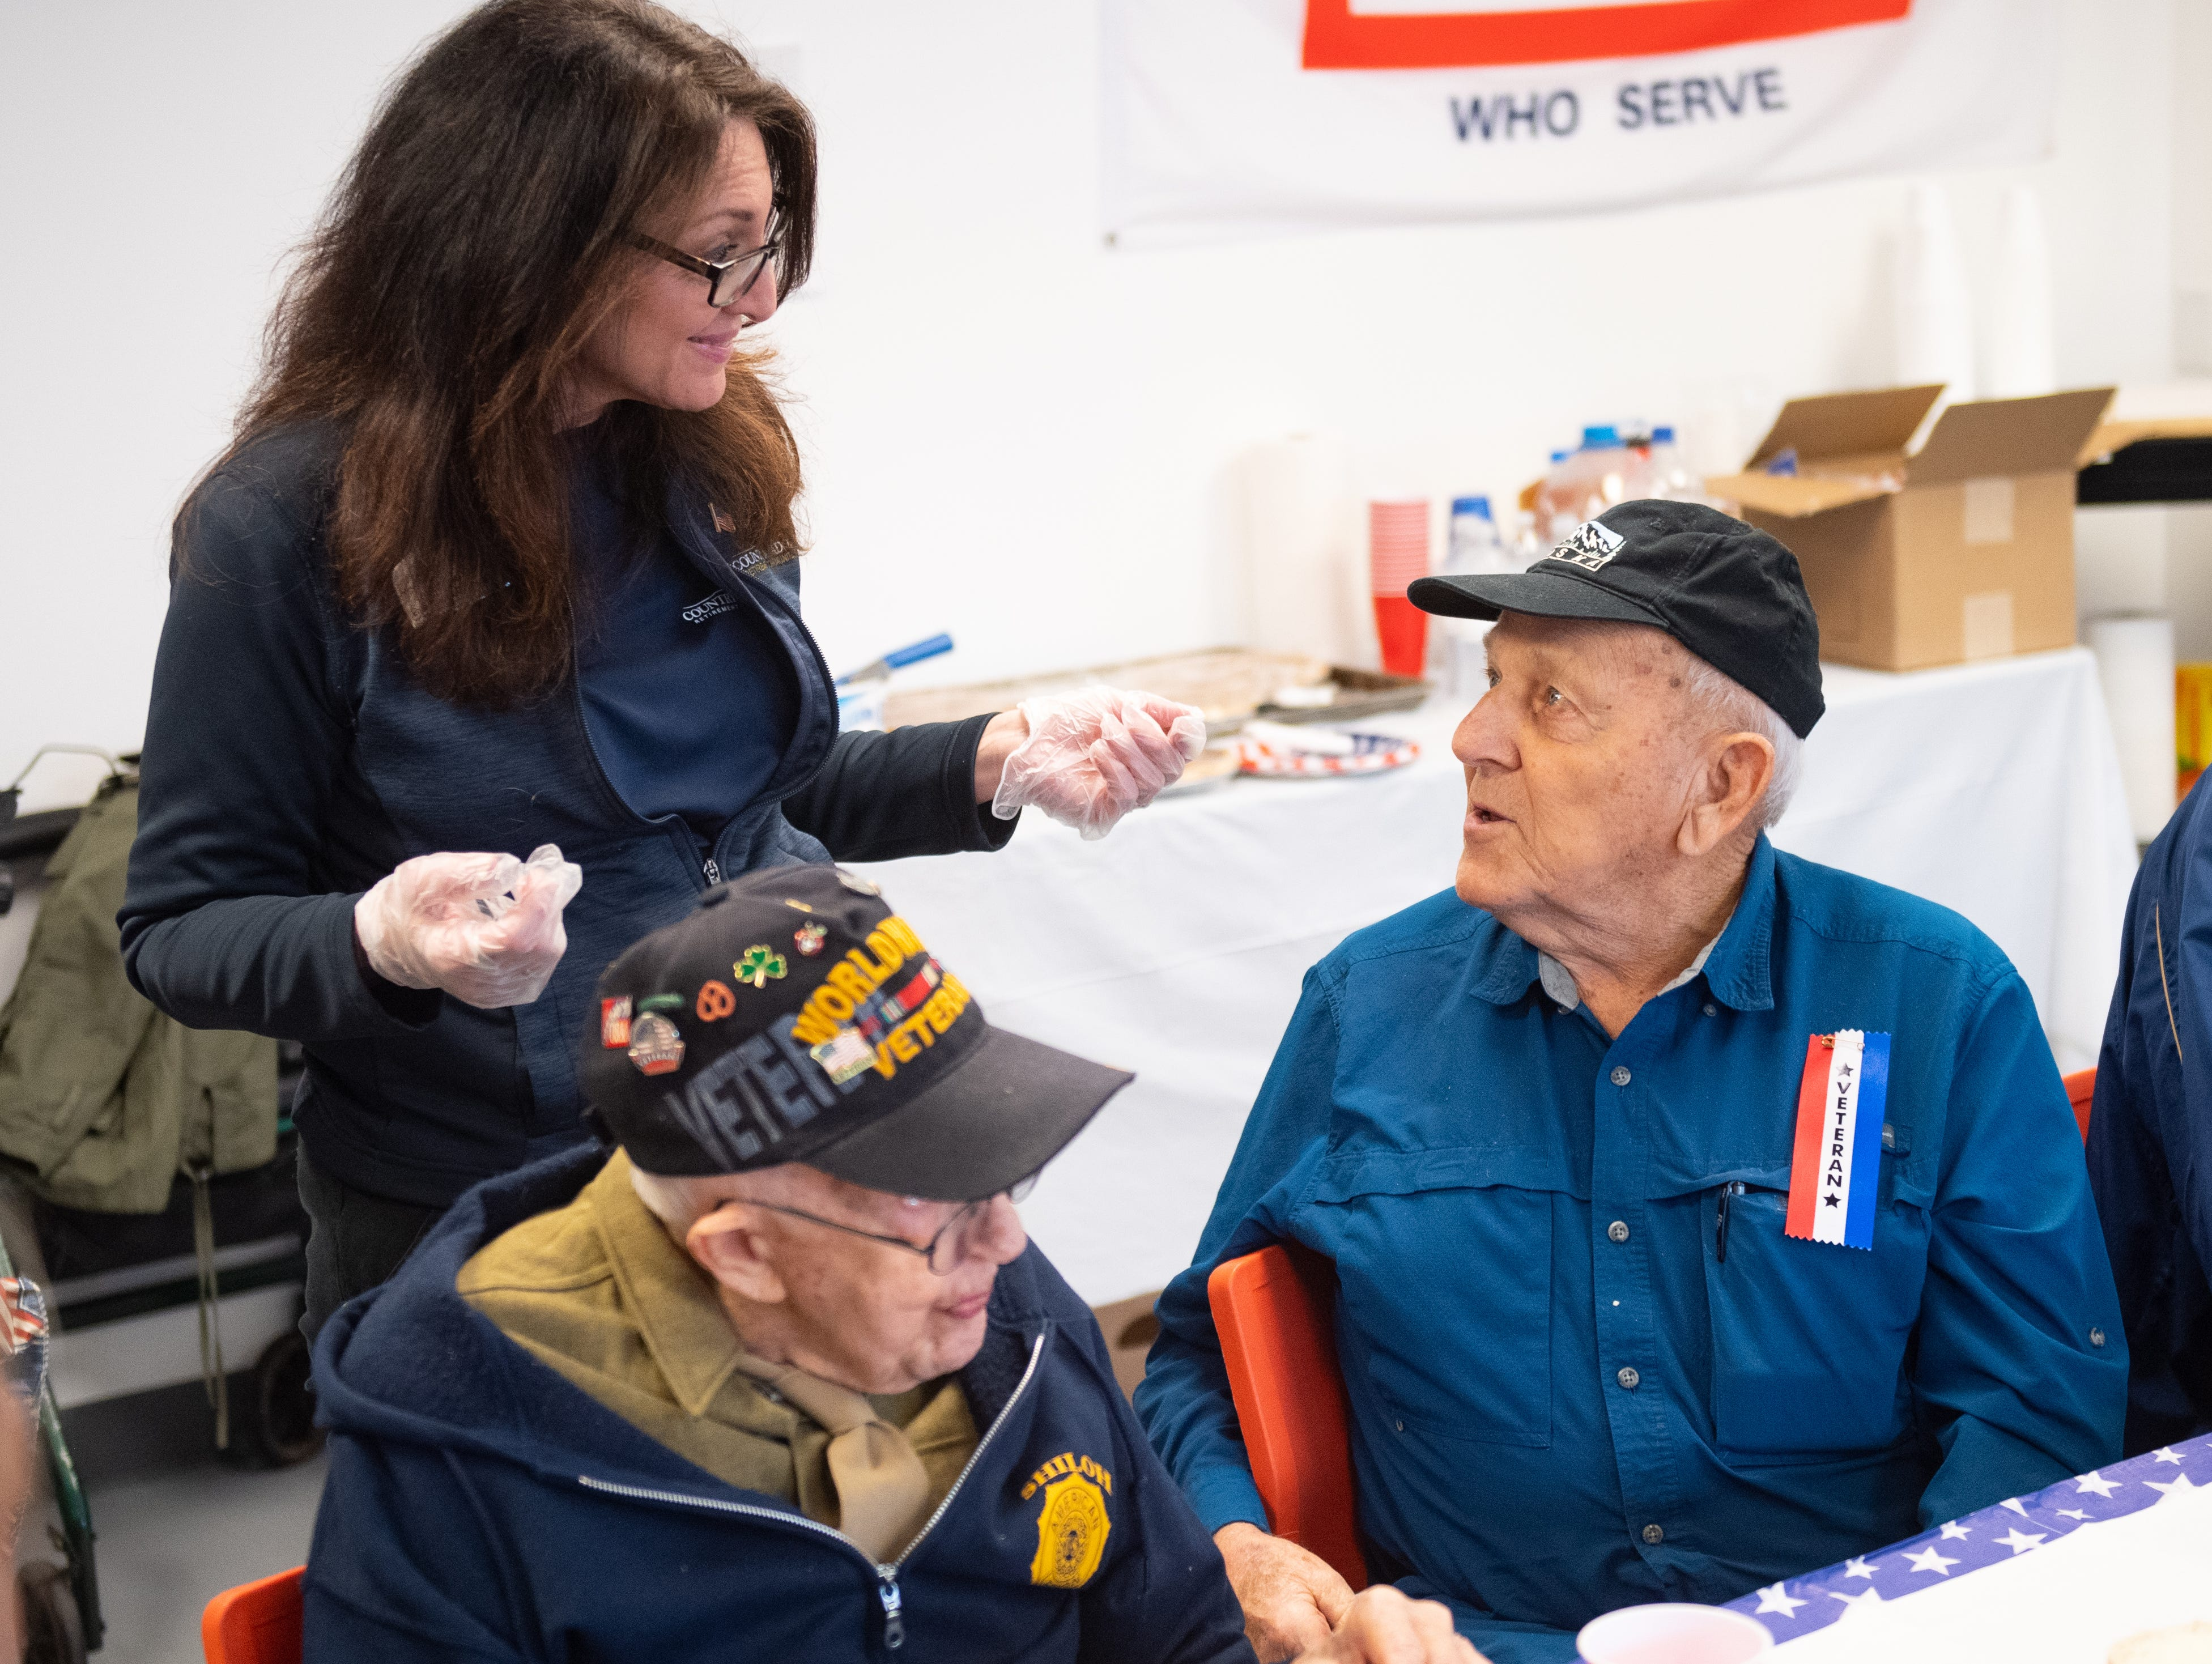 Irvin Baughman a World War II Air Force veteran shares stories with Bonnie Geisinger, Director of Community Life at York County Meadows Retirement Communities, March 29, 2019.